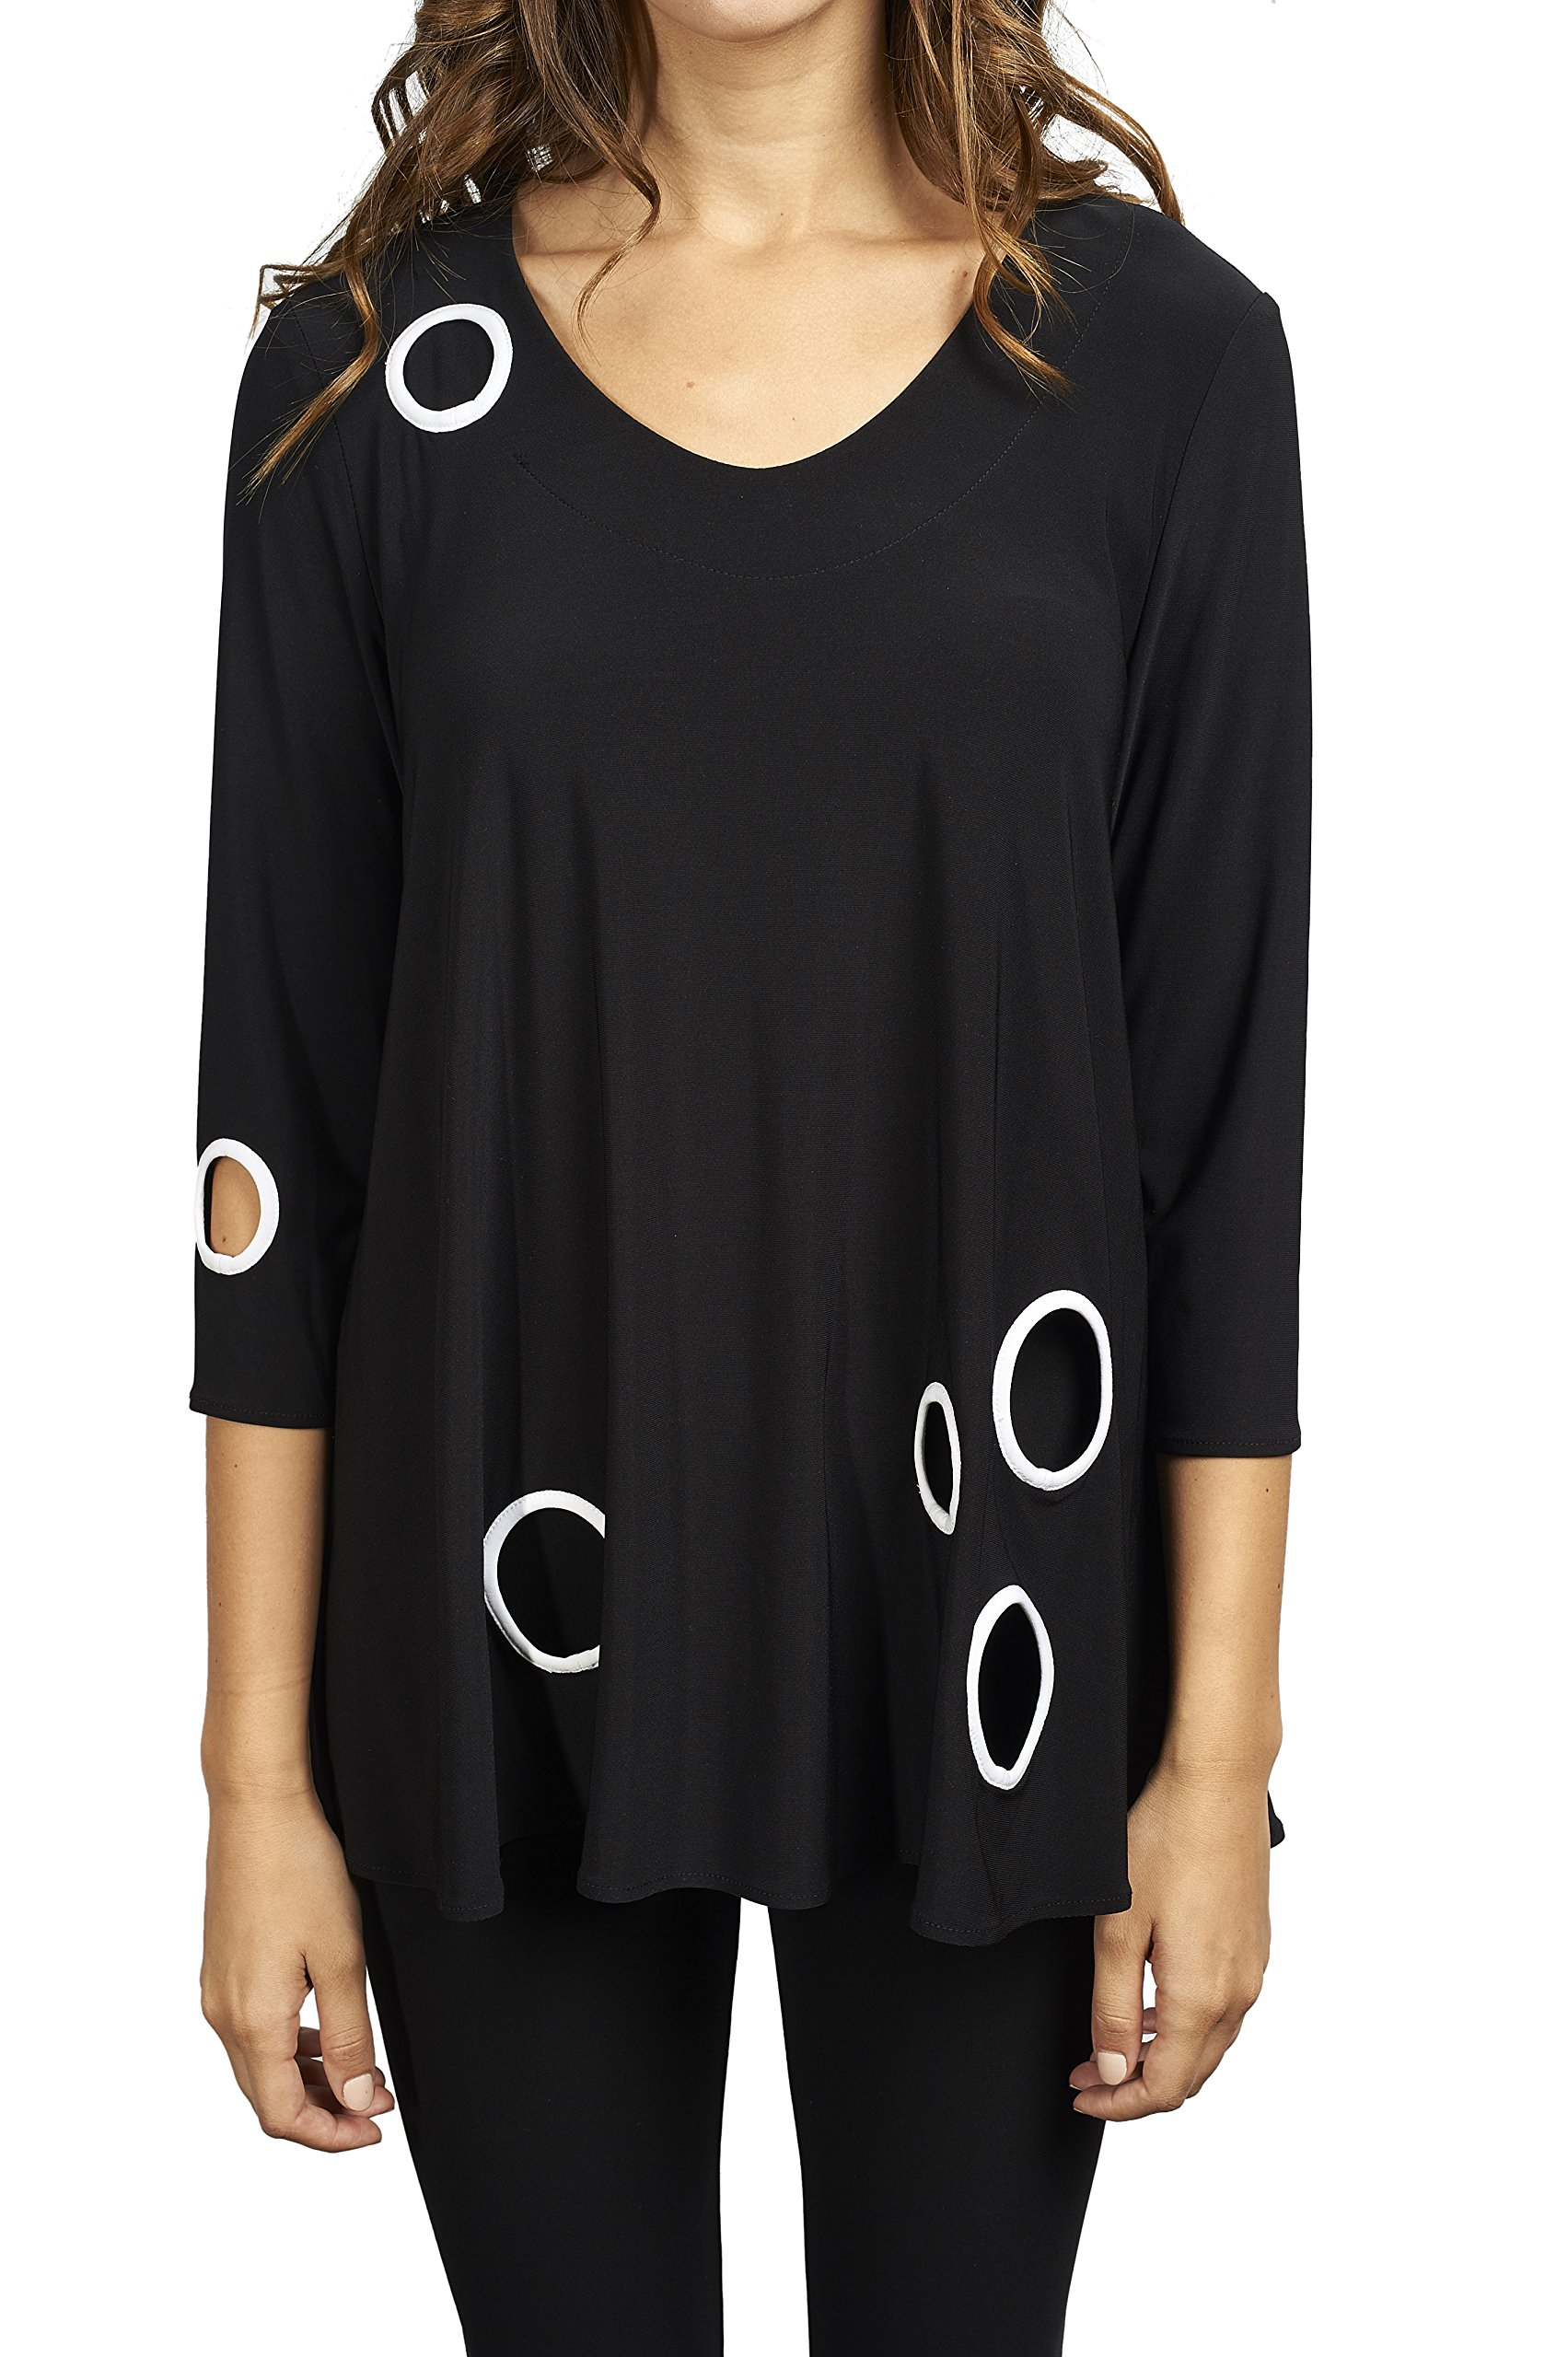 Joseph Ribkoff Black Tunic Top with White Circle Cut Outs Style 173061 - Size 16